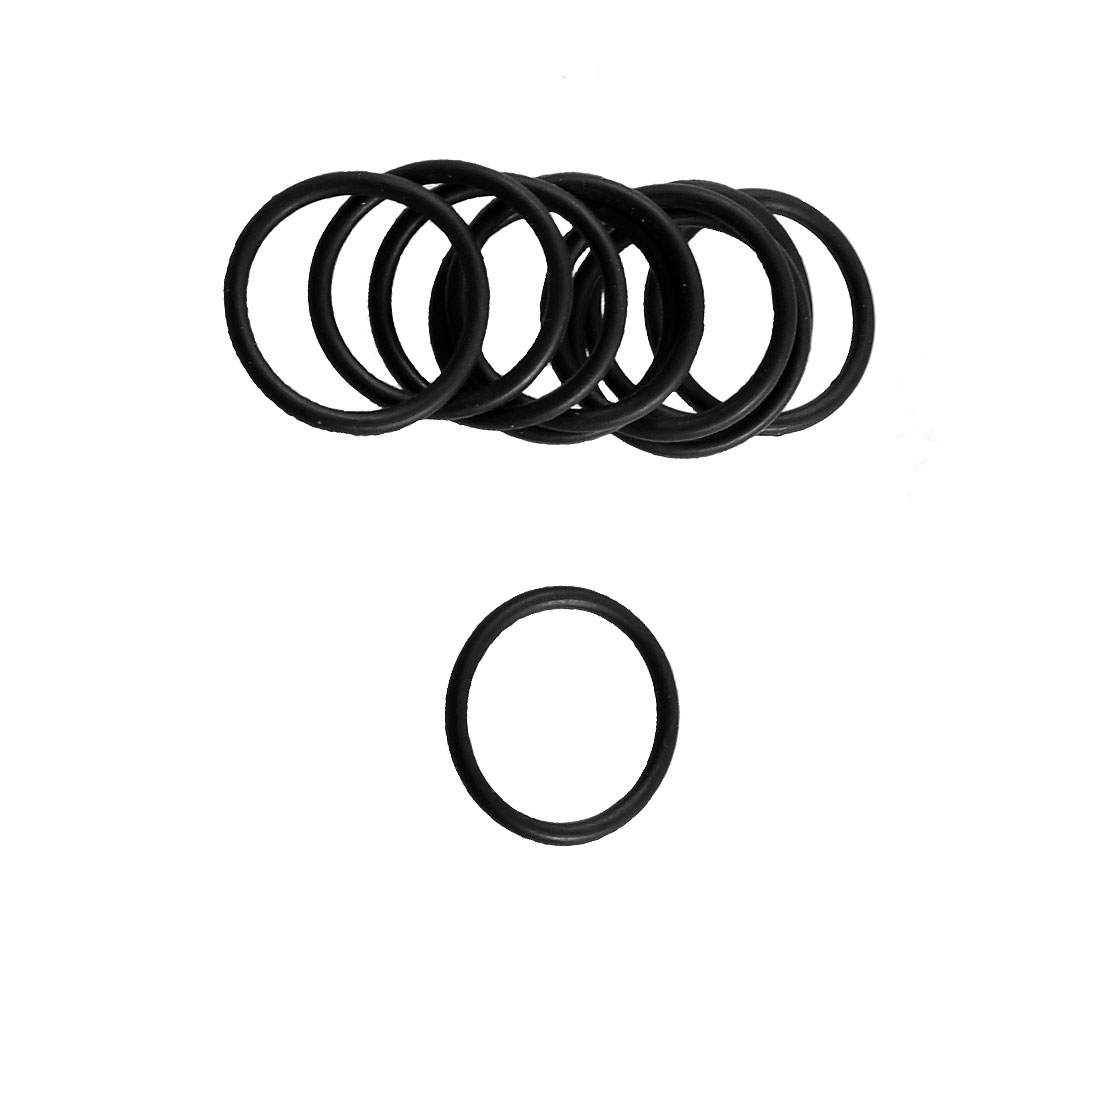 10 Pcs 19.6mm x 16mm x 1.8mm Black Rubber O Ring Oil Sealing Gasket